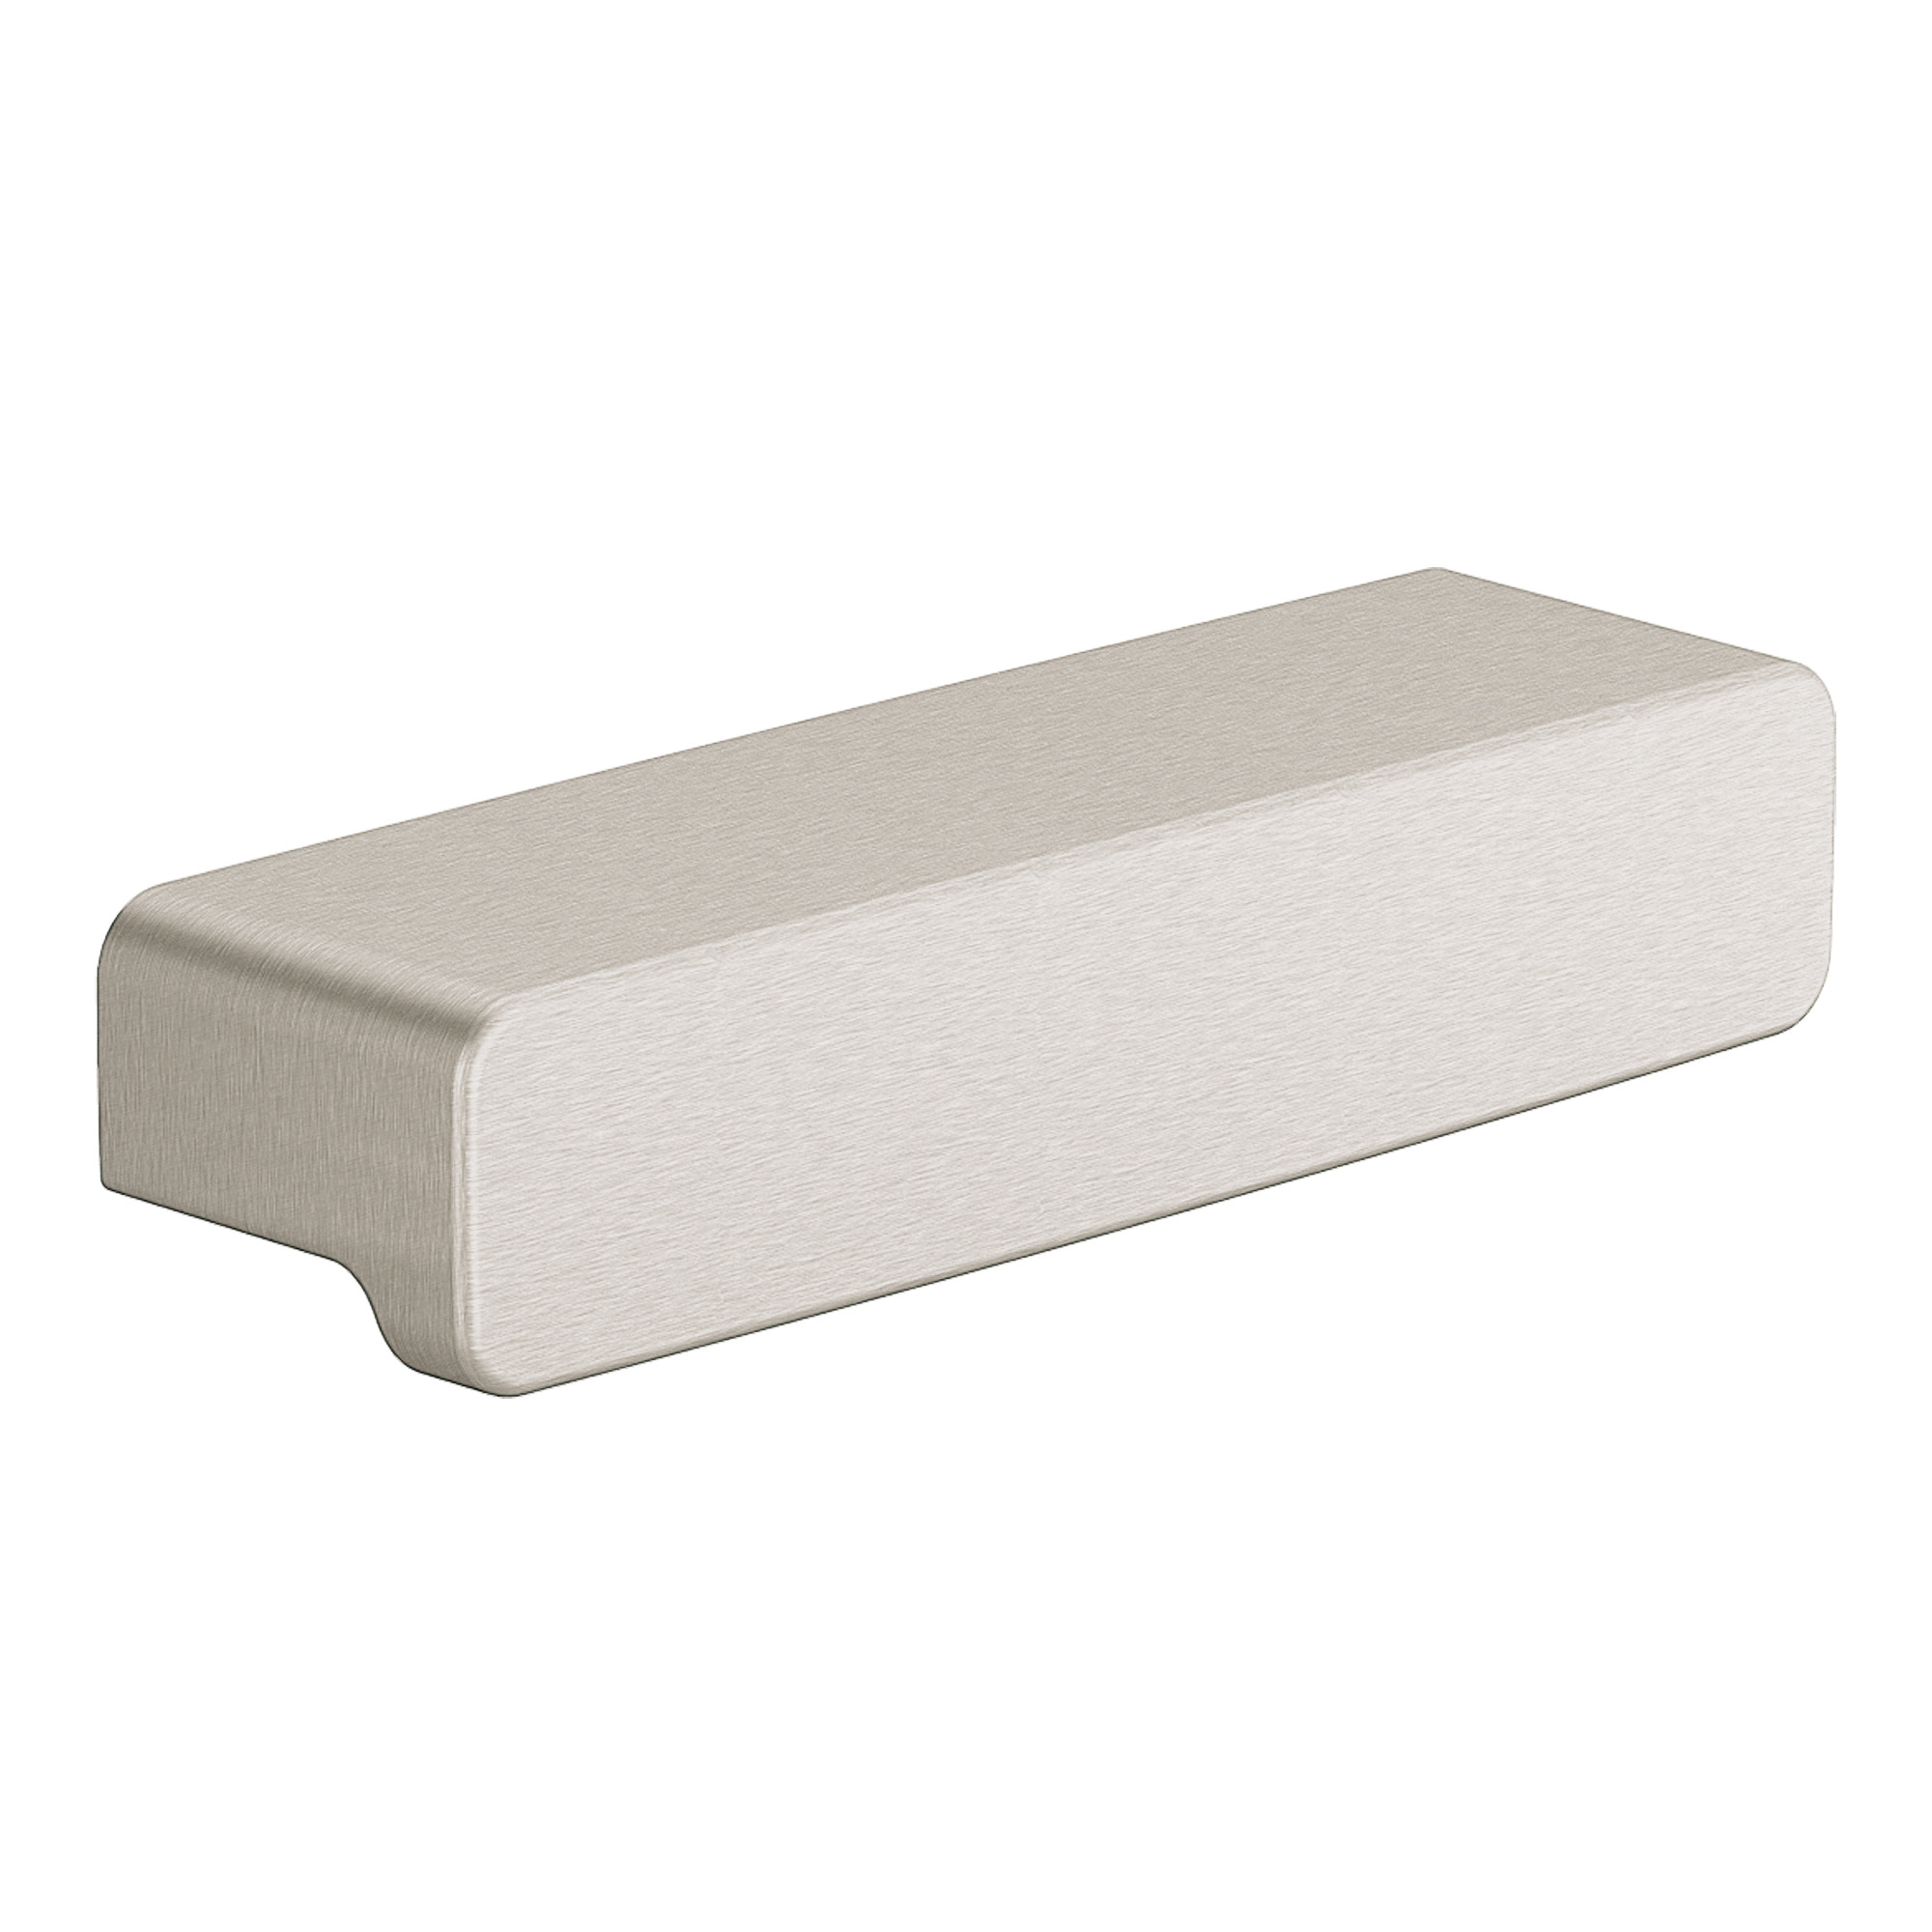 90 Degree Brushed nickel drawer pull MOEN-YB8807BN